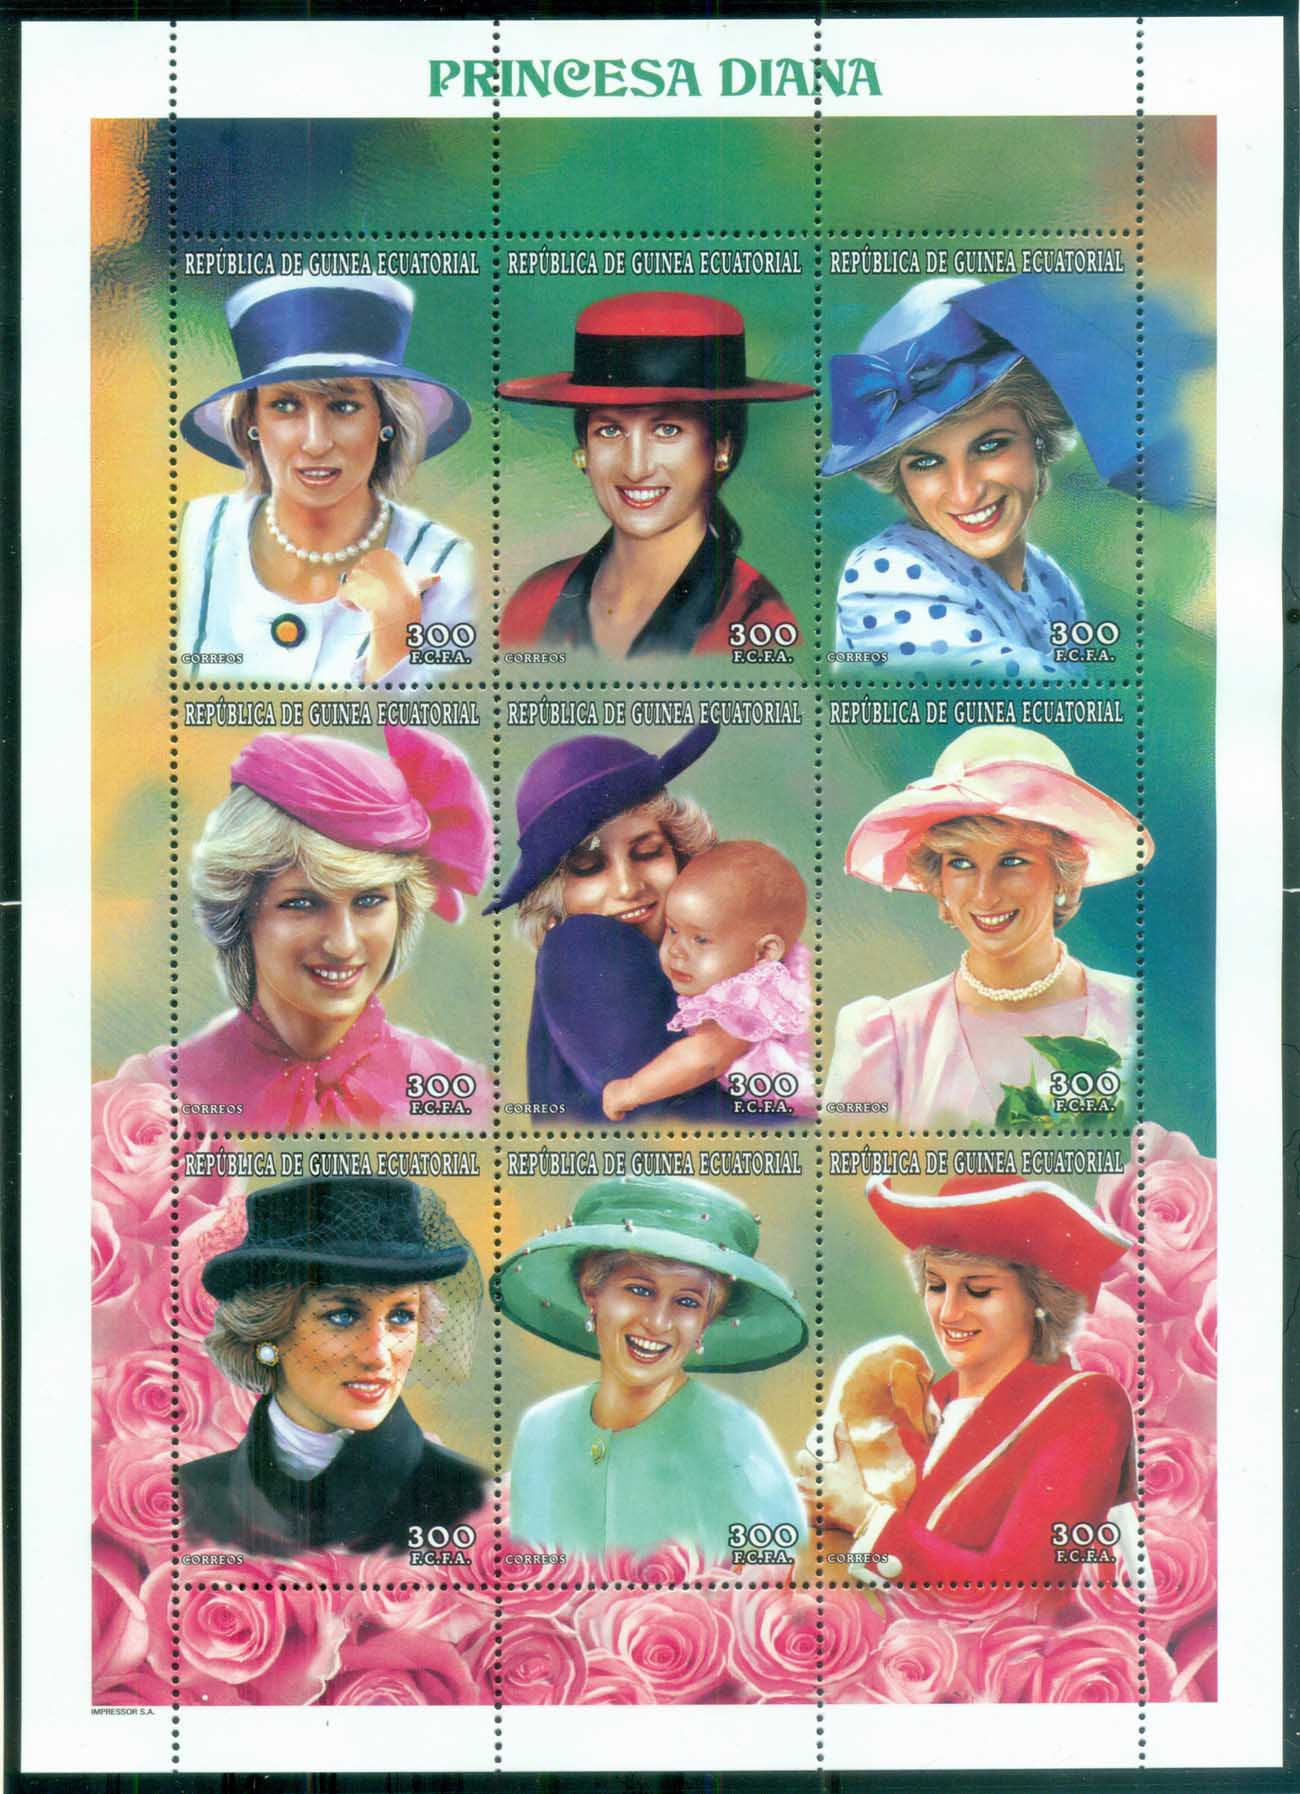 Equatorial Guinea 1997 Princess Diana in Memoriam, England's Rose in her Many Hats MS MUH